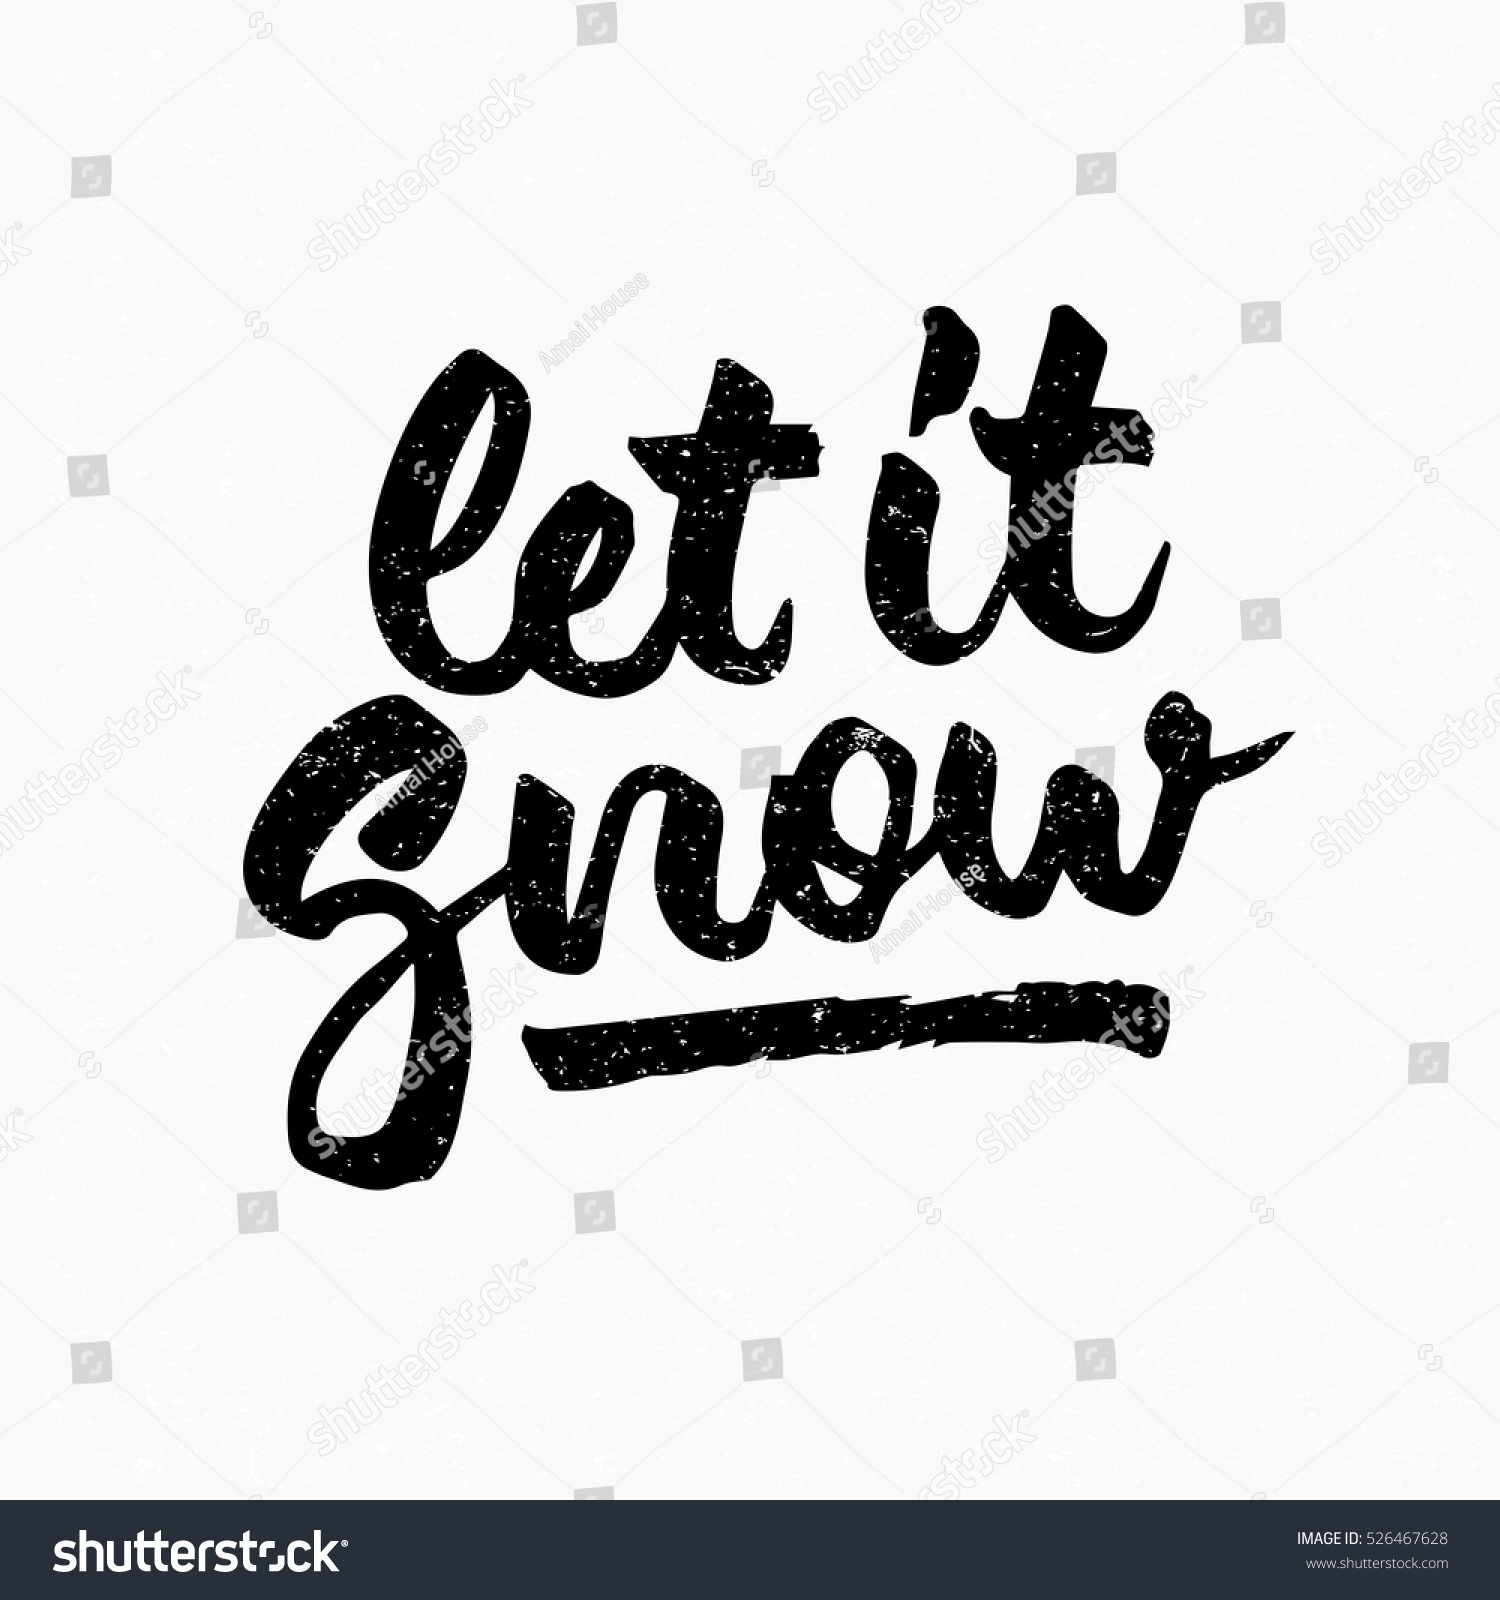 Let Snow Quote Ink Hand Lettering Stock Vector 526467628 ...